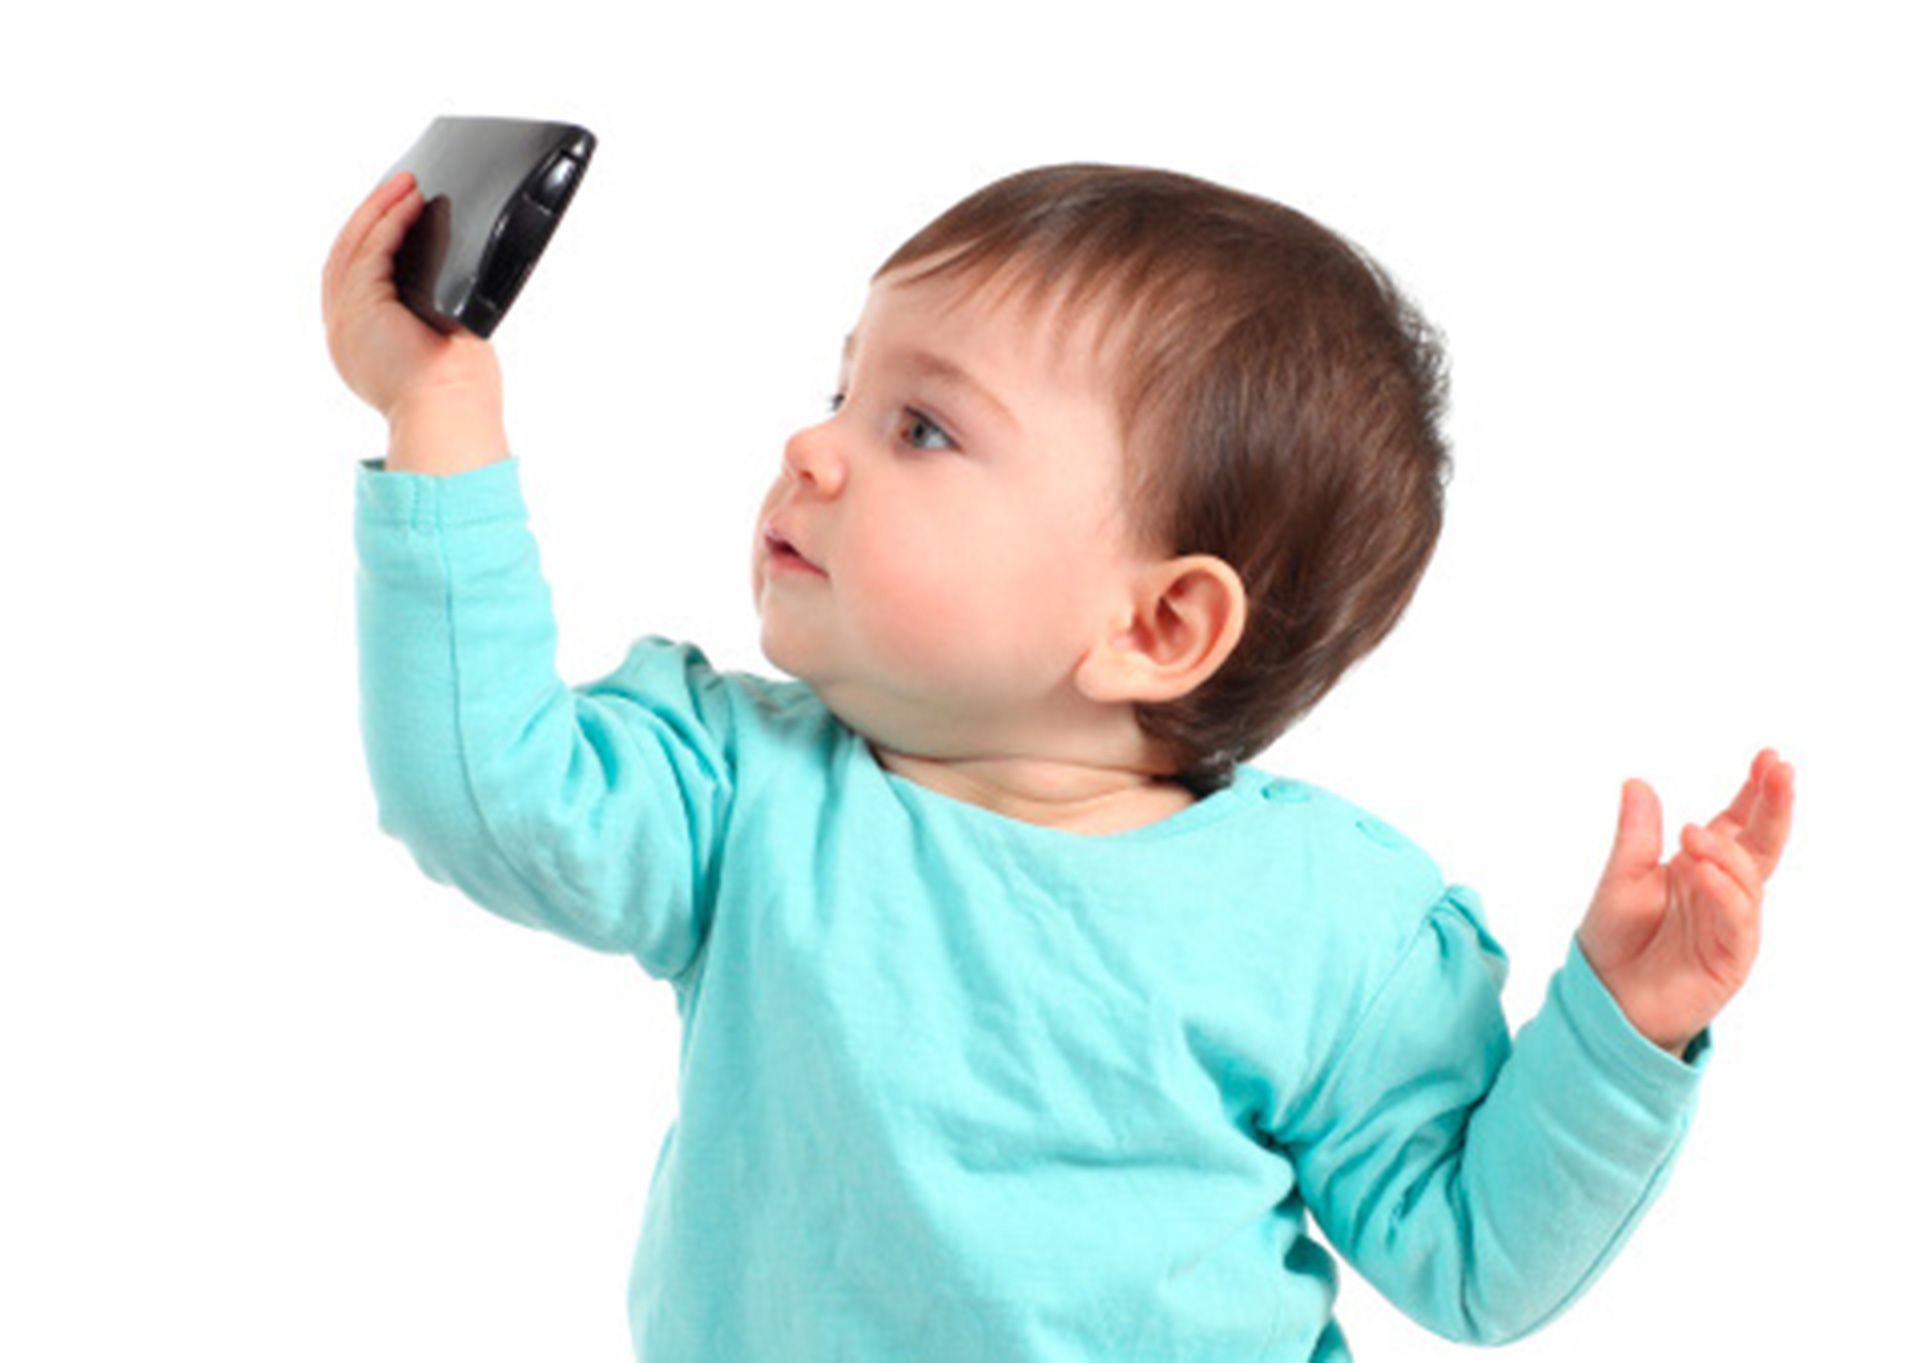 Association of Parental and Contextual Stressors With Child Screen Exposure and Child Screen Exposure Combined With Feeding, JAMA Network Open, February 2020